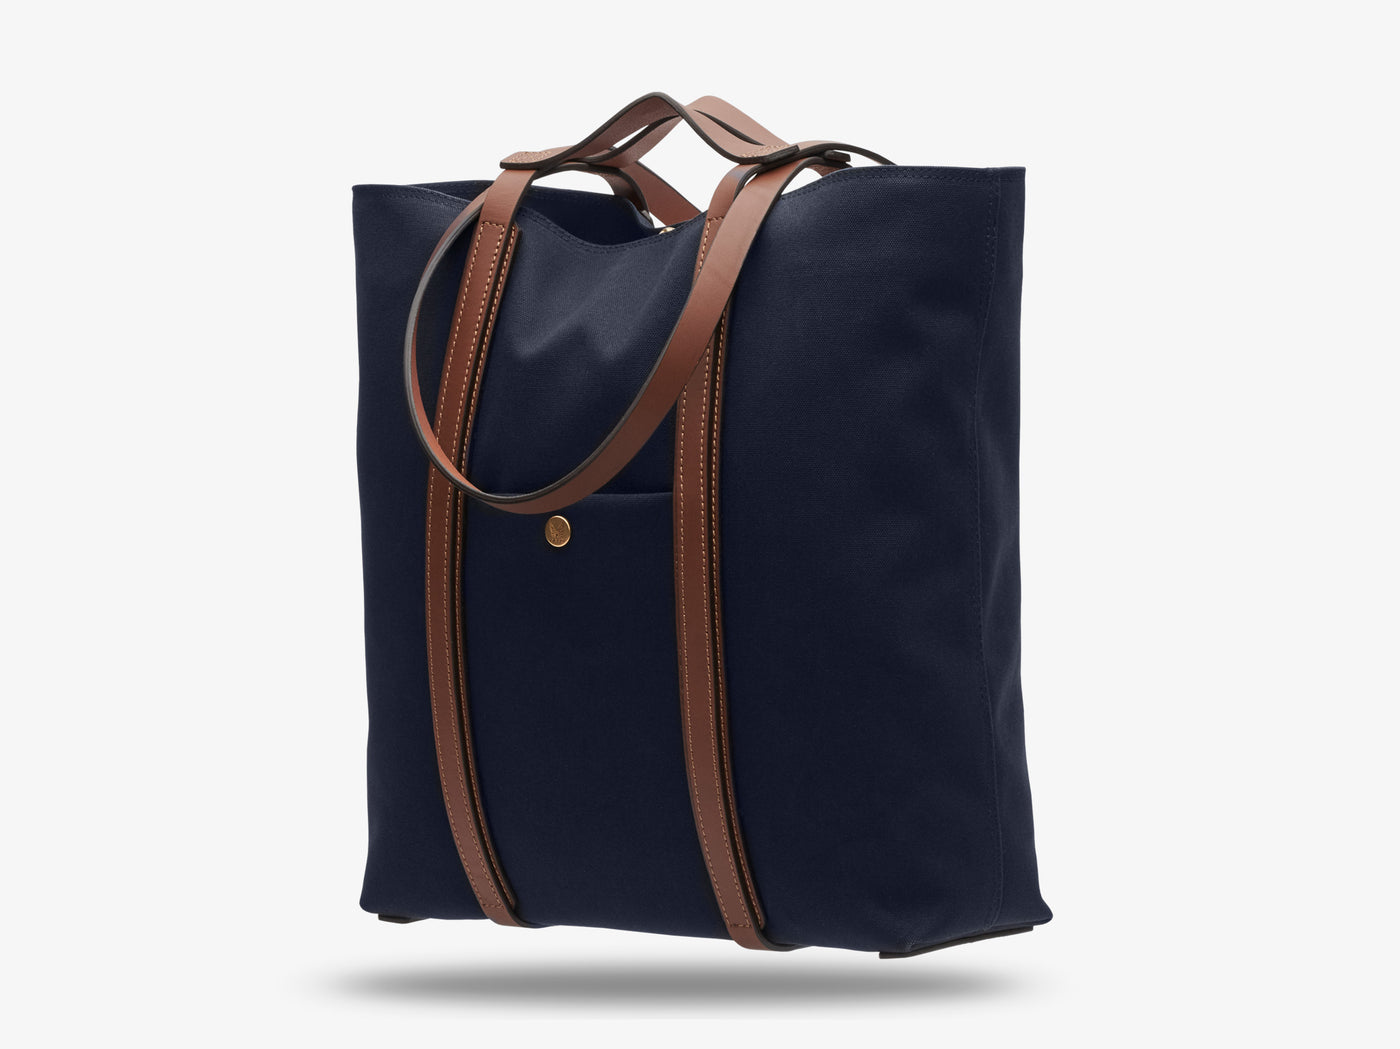 M/S Raise - Midnight blue/Cuoio